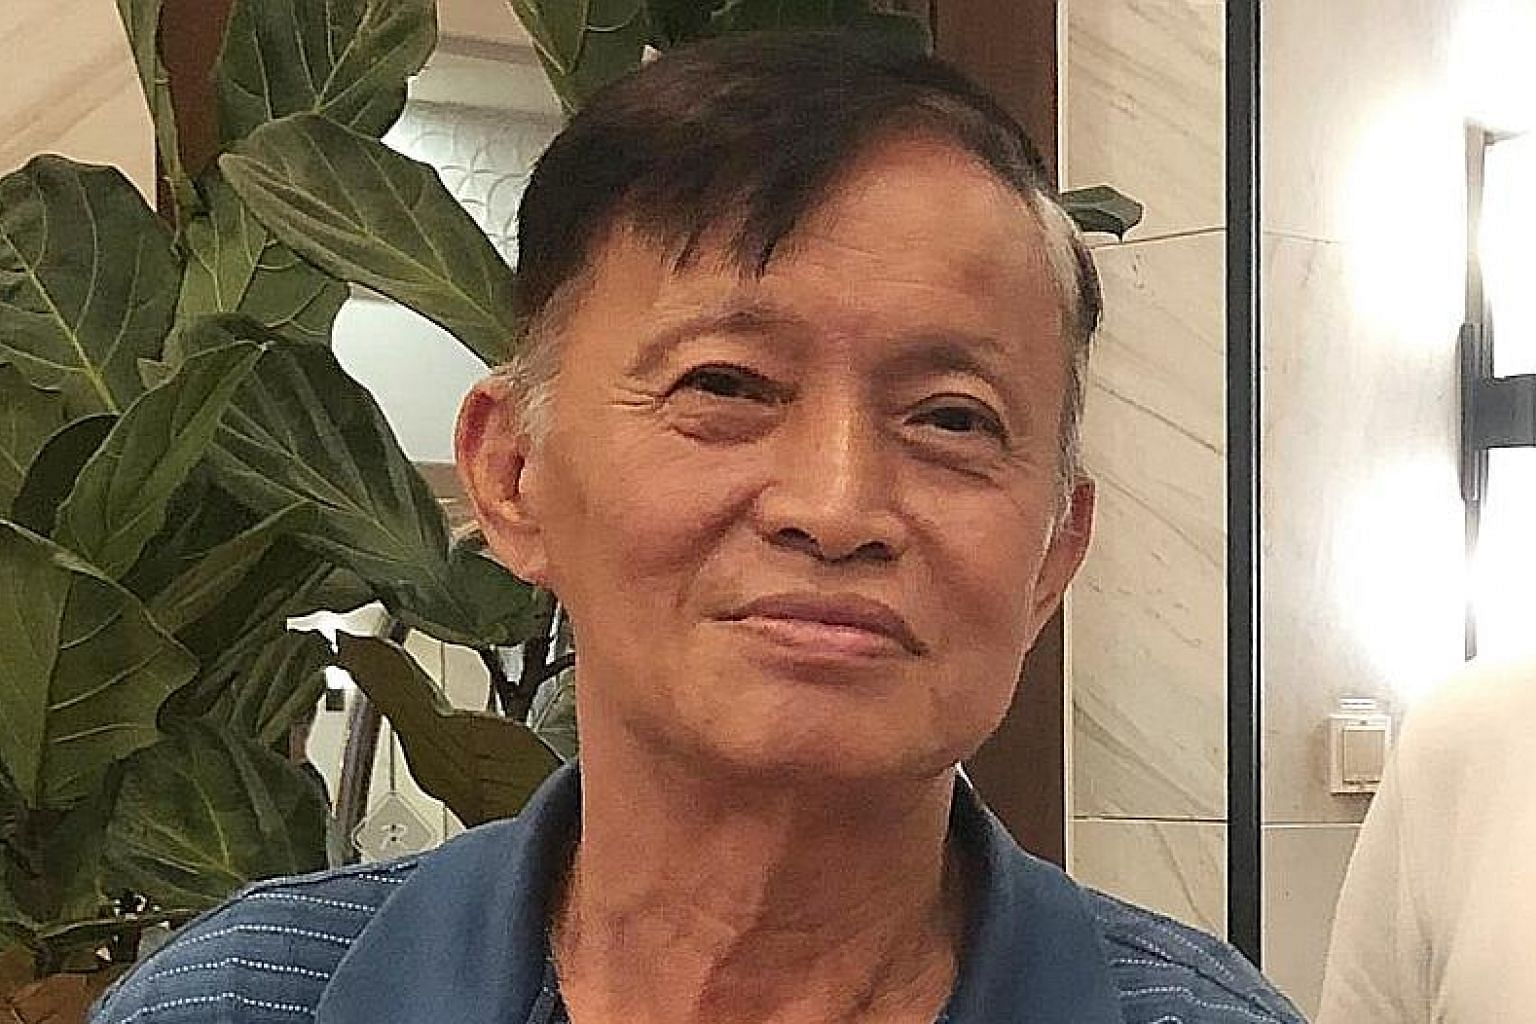 Mr Quek Lye Seng died last Friday after being stung by hornets. He was picking durians and rambutans alone in a forest in Hillview when he encountered the insects.